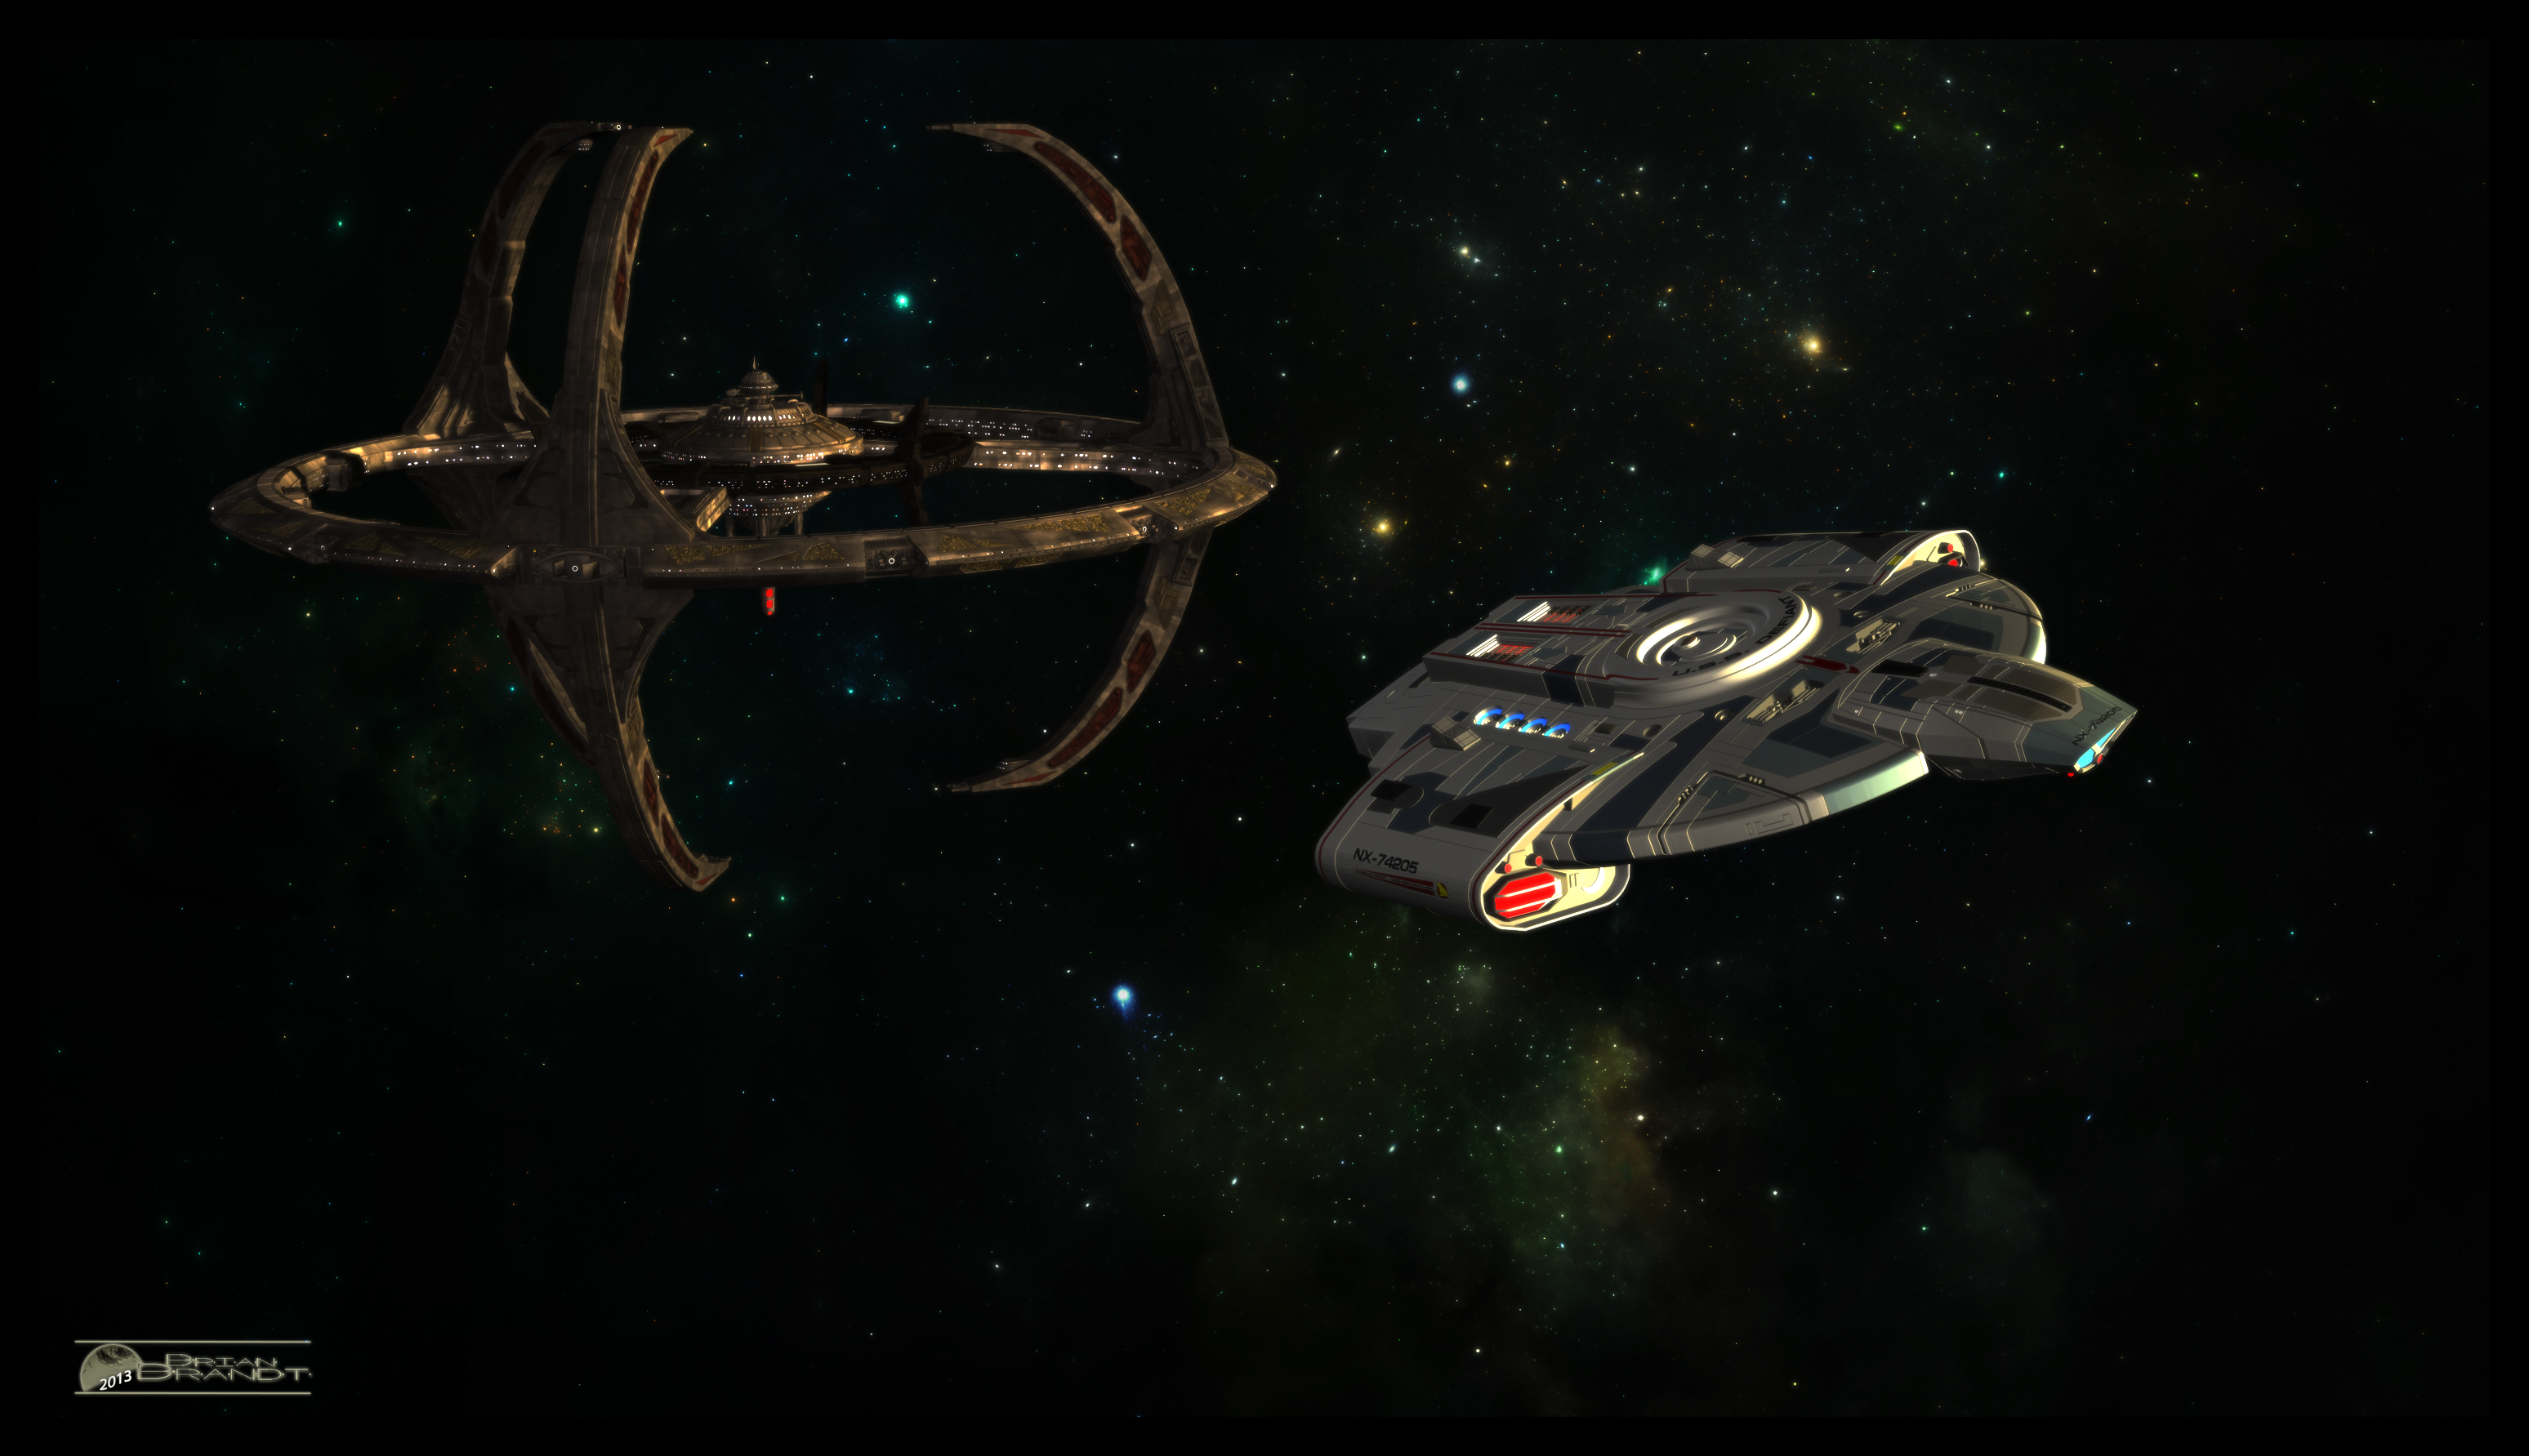 defiant_departing_ds9_by_mototsume-d6xv9k8